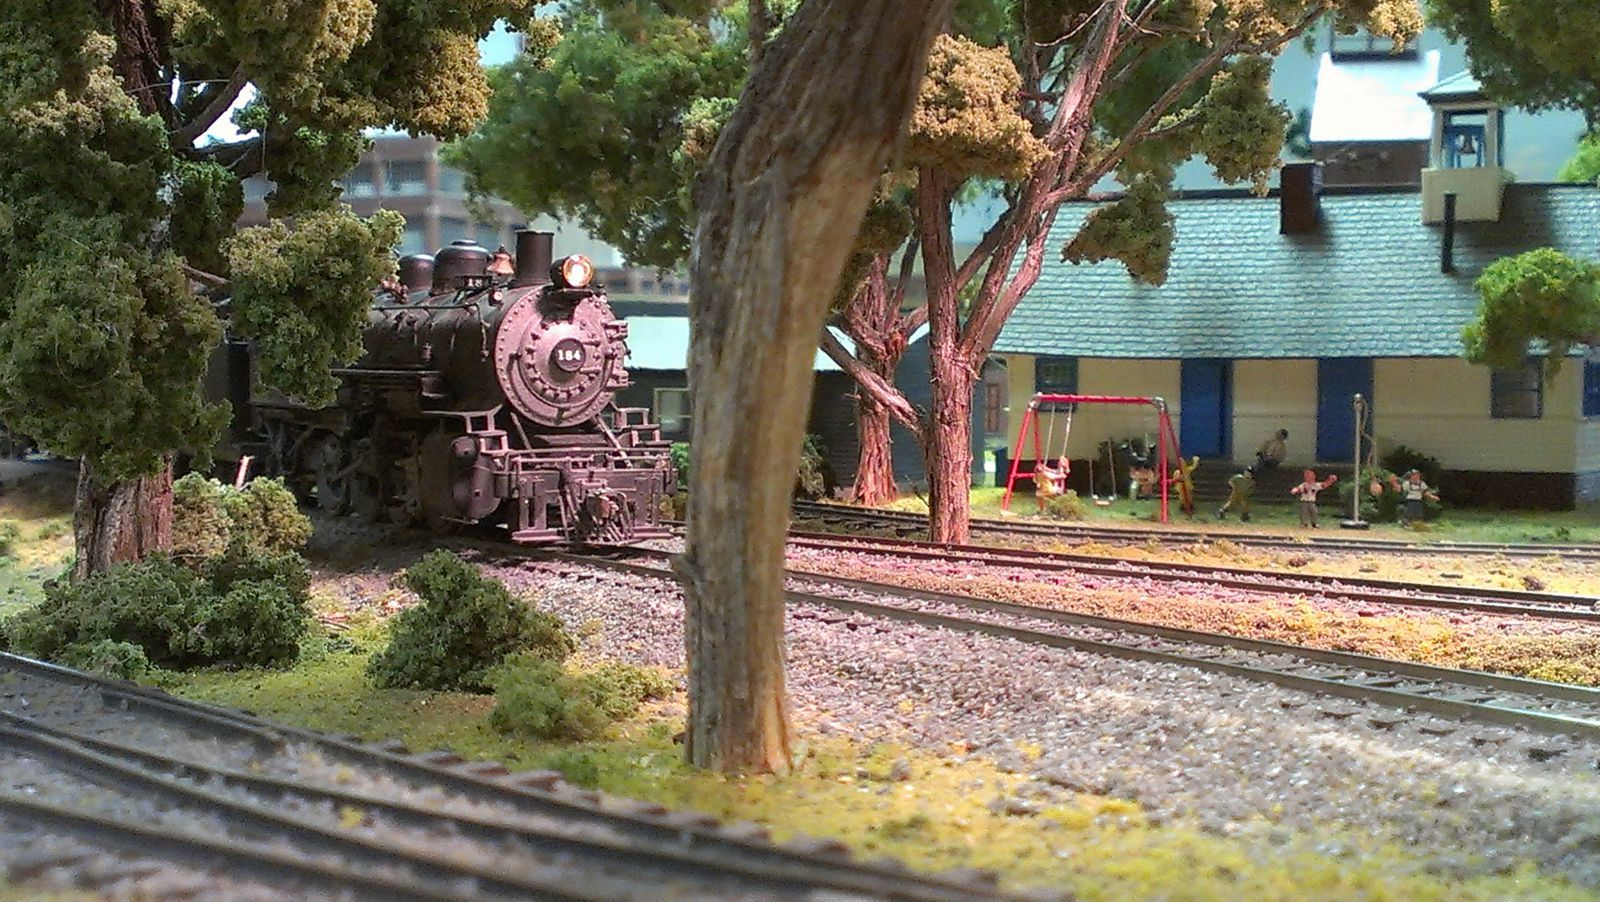 home grown trees | Model Railroad Hobbyist magazine | Having fun with model trains | Instant access to model railway resources without barriers